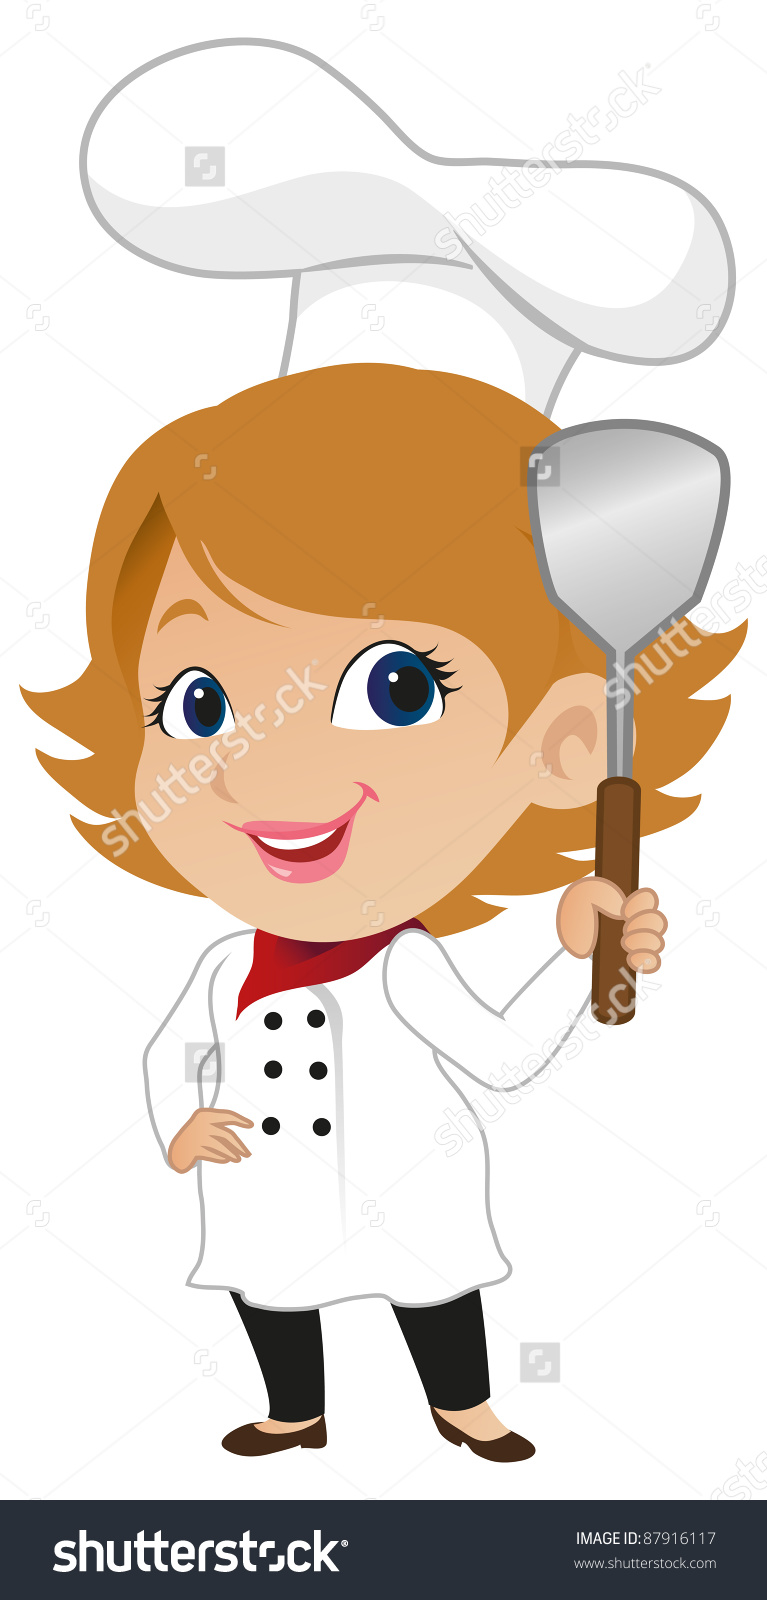 Chef clipart no watermark image library Woman chef clipart images no watermark - ClipartFest image library